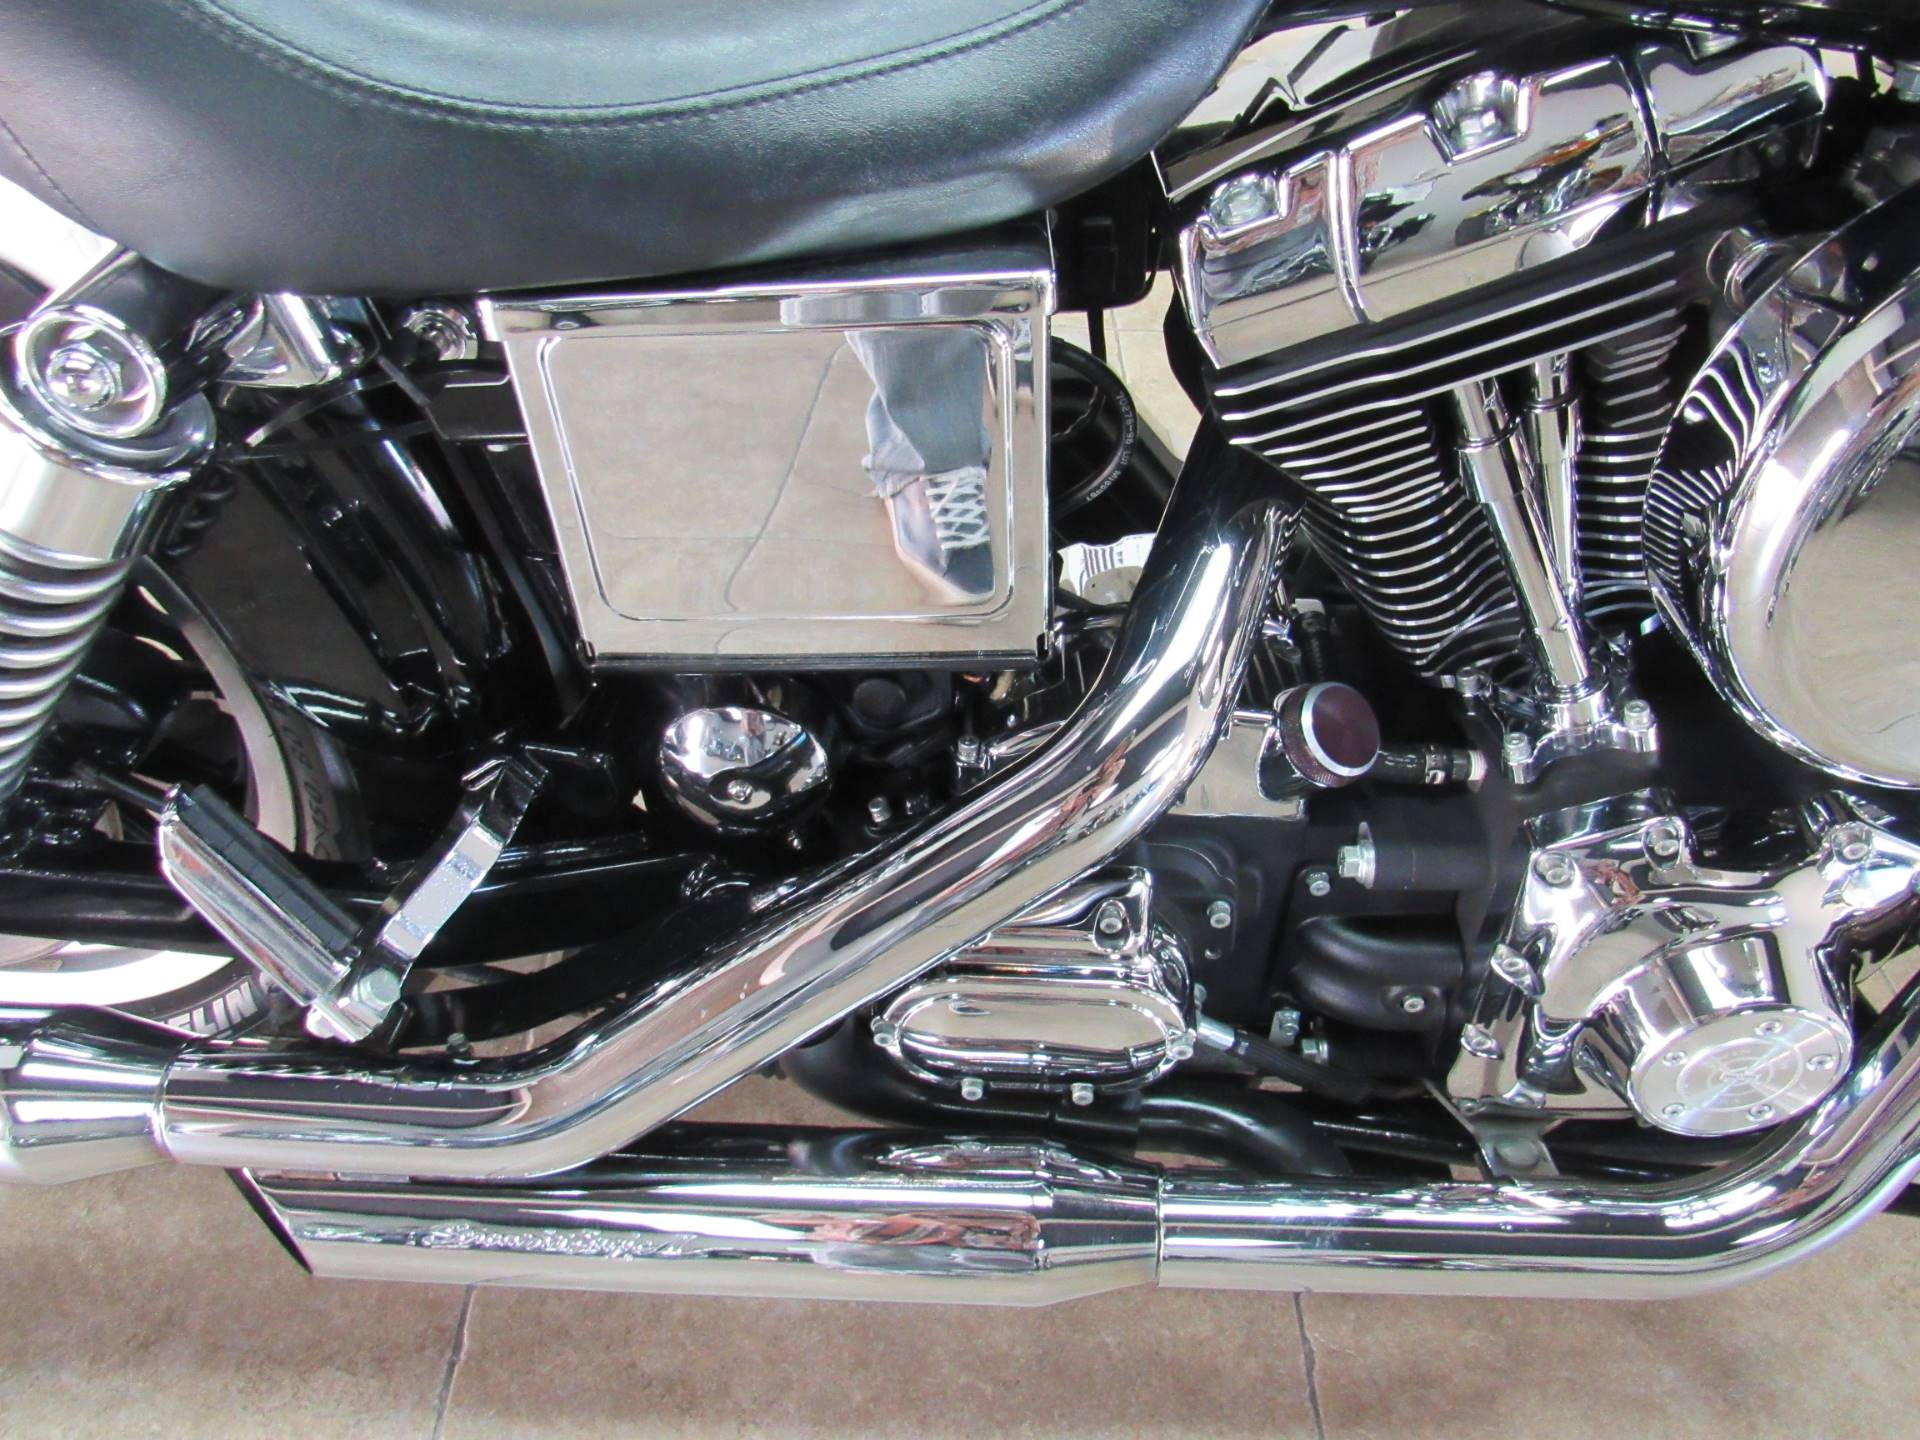 2003 Harley-Davidson FXDL Dyna Low Rider® in Temecula, California - Photo 22